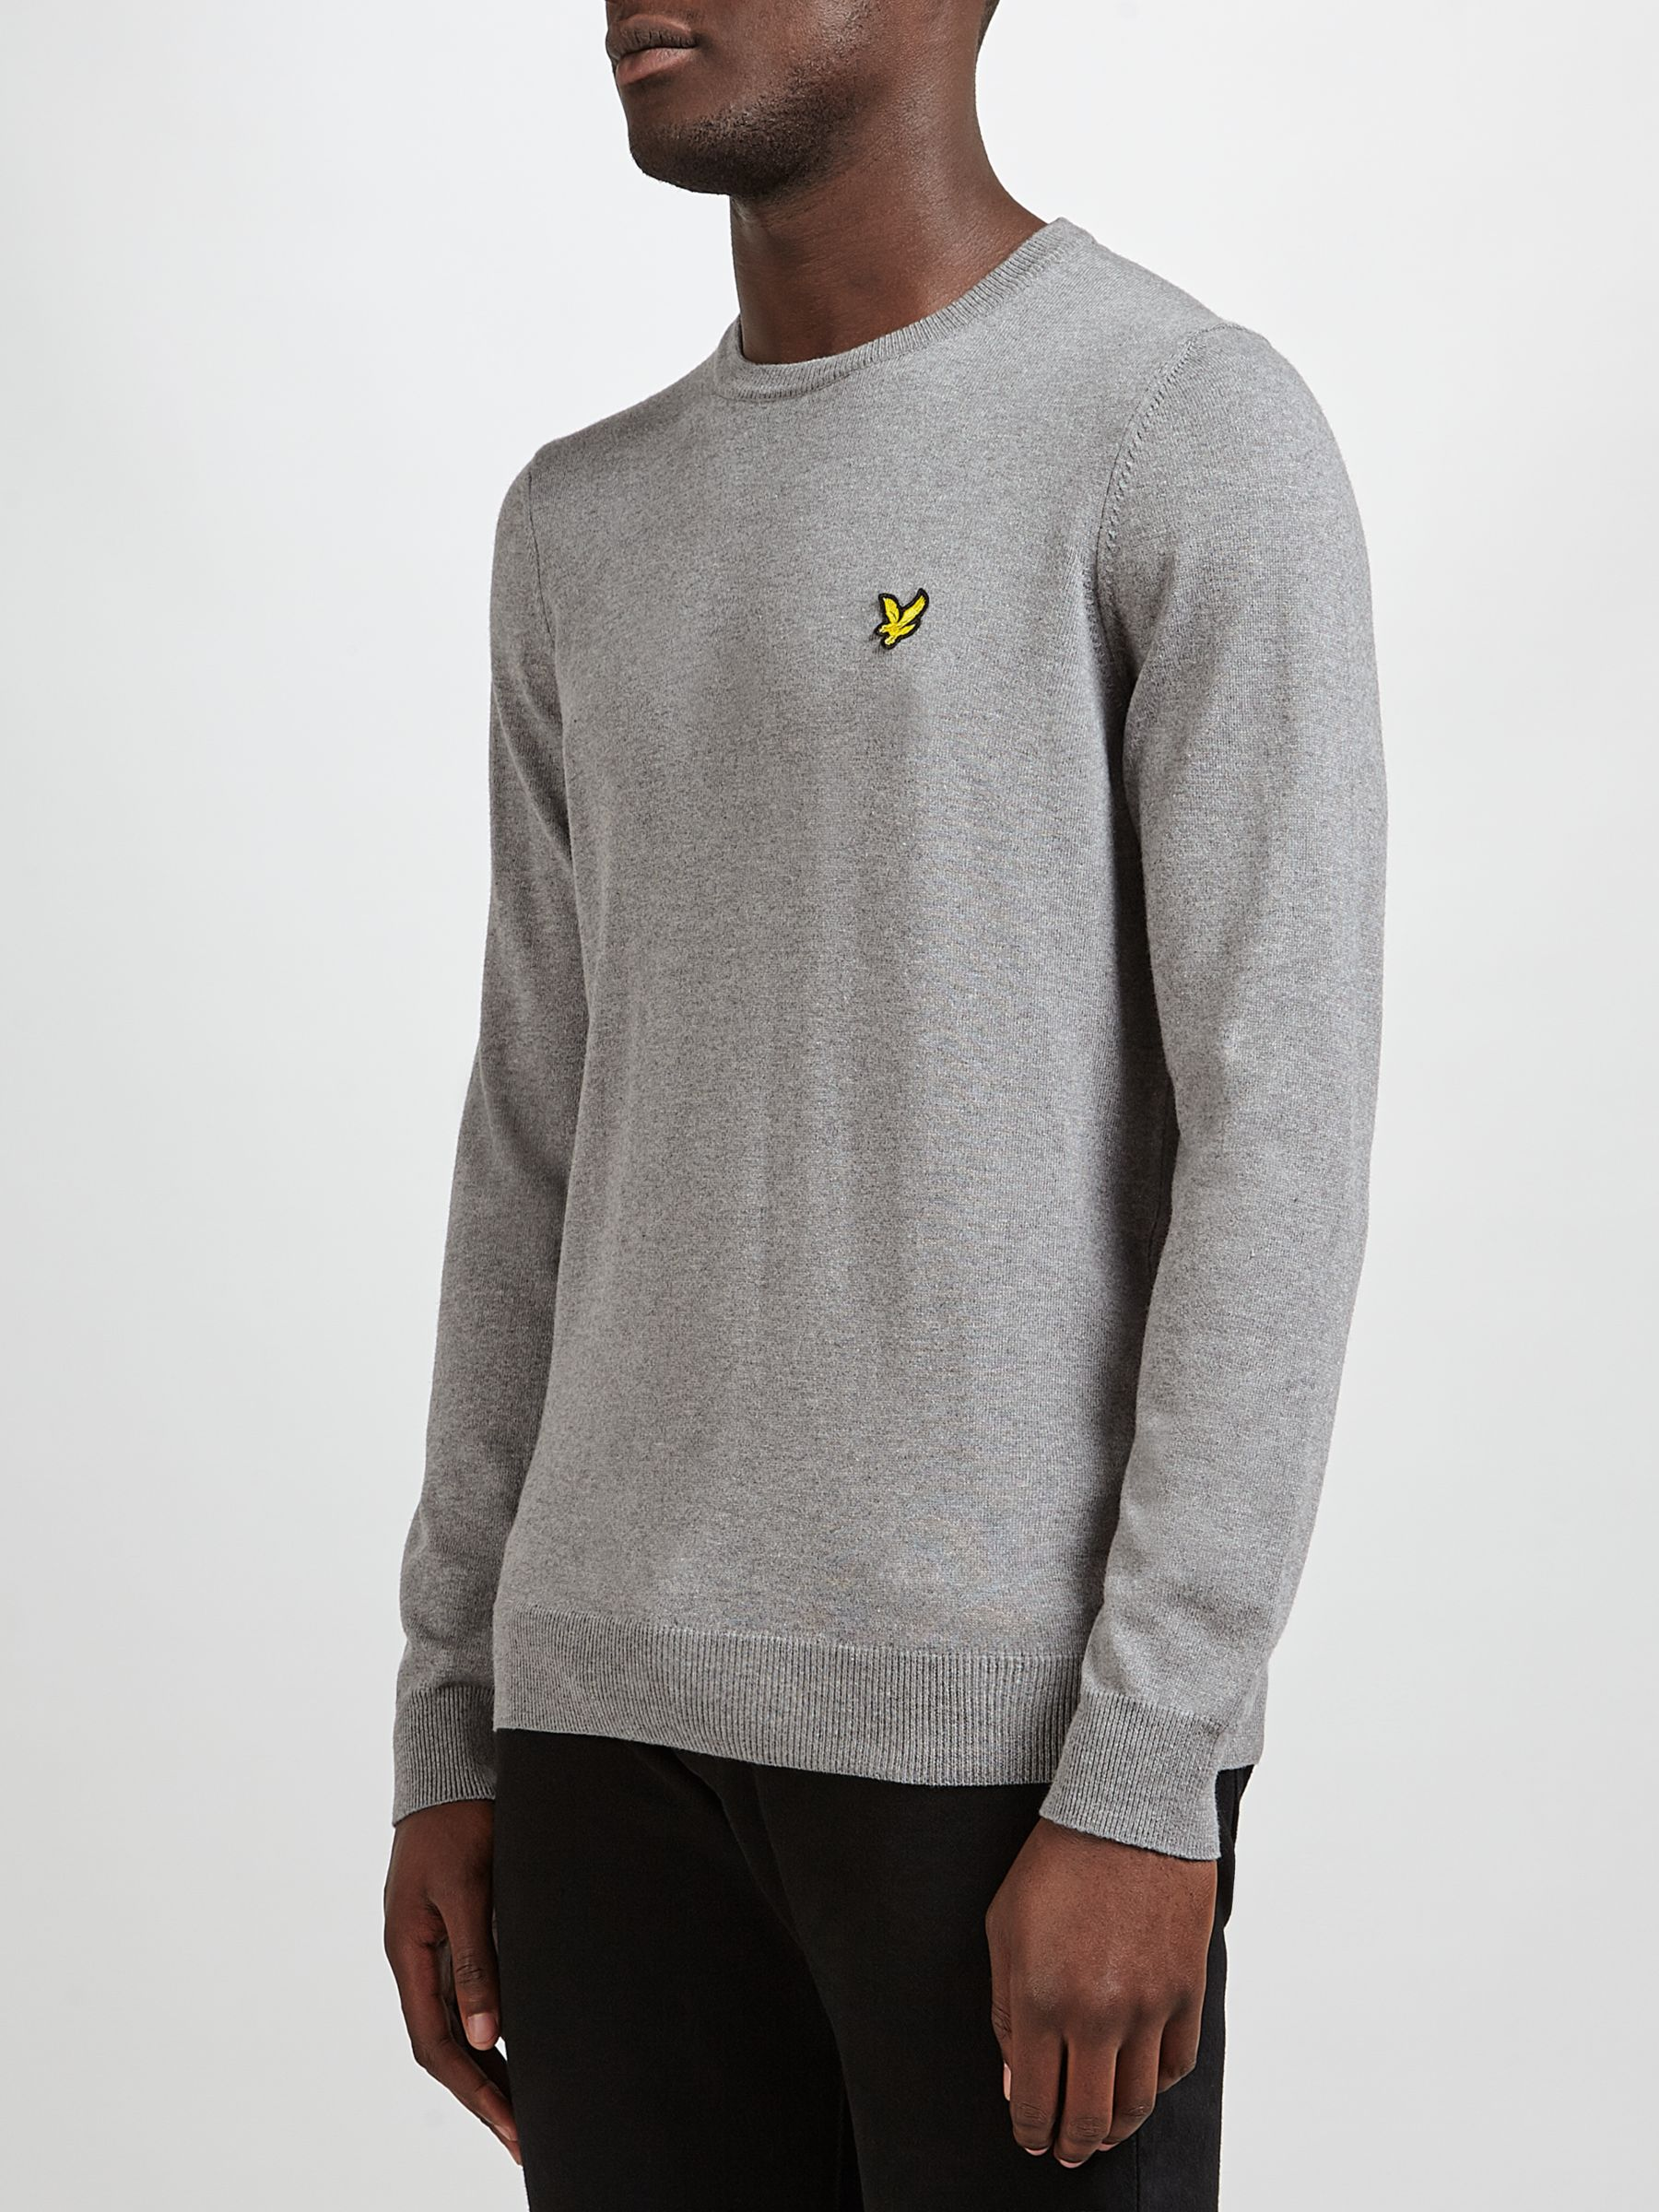 Lyle & Scott Lyle & Scott Crew Neck Cotton Merino Jumper, Grey